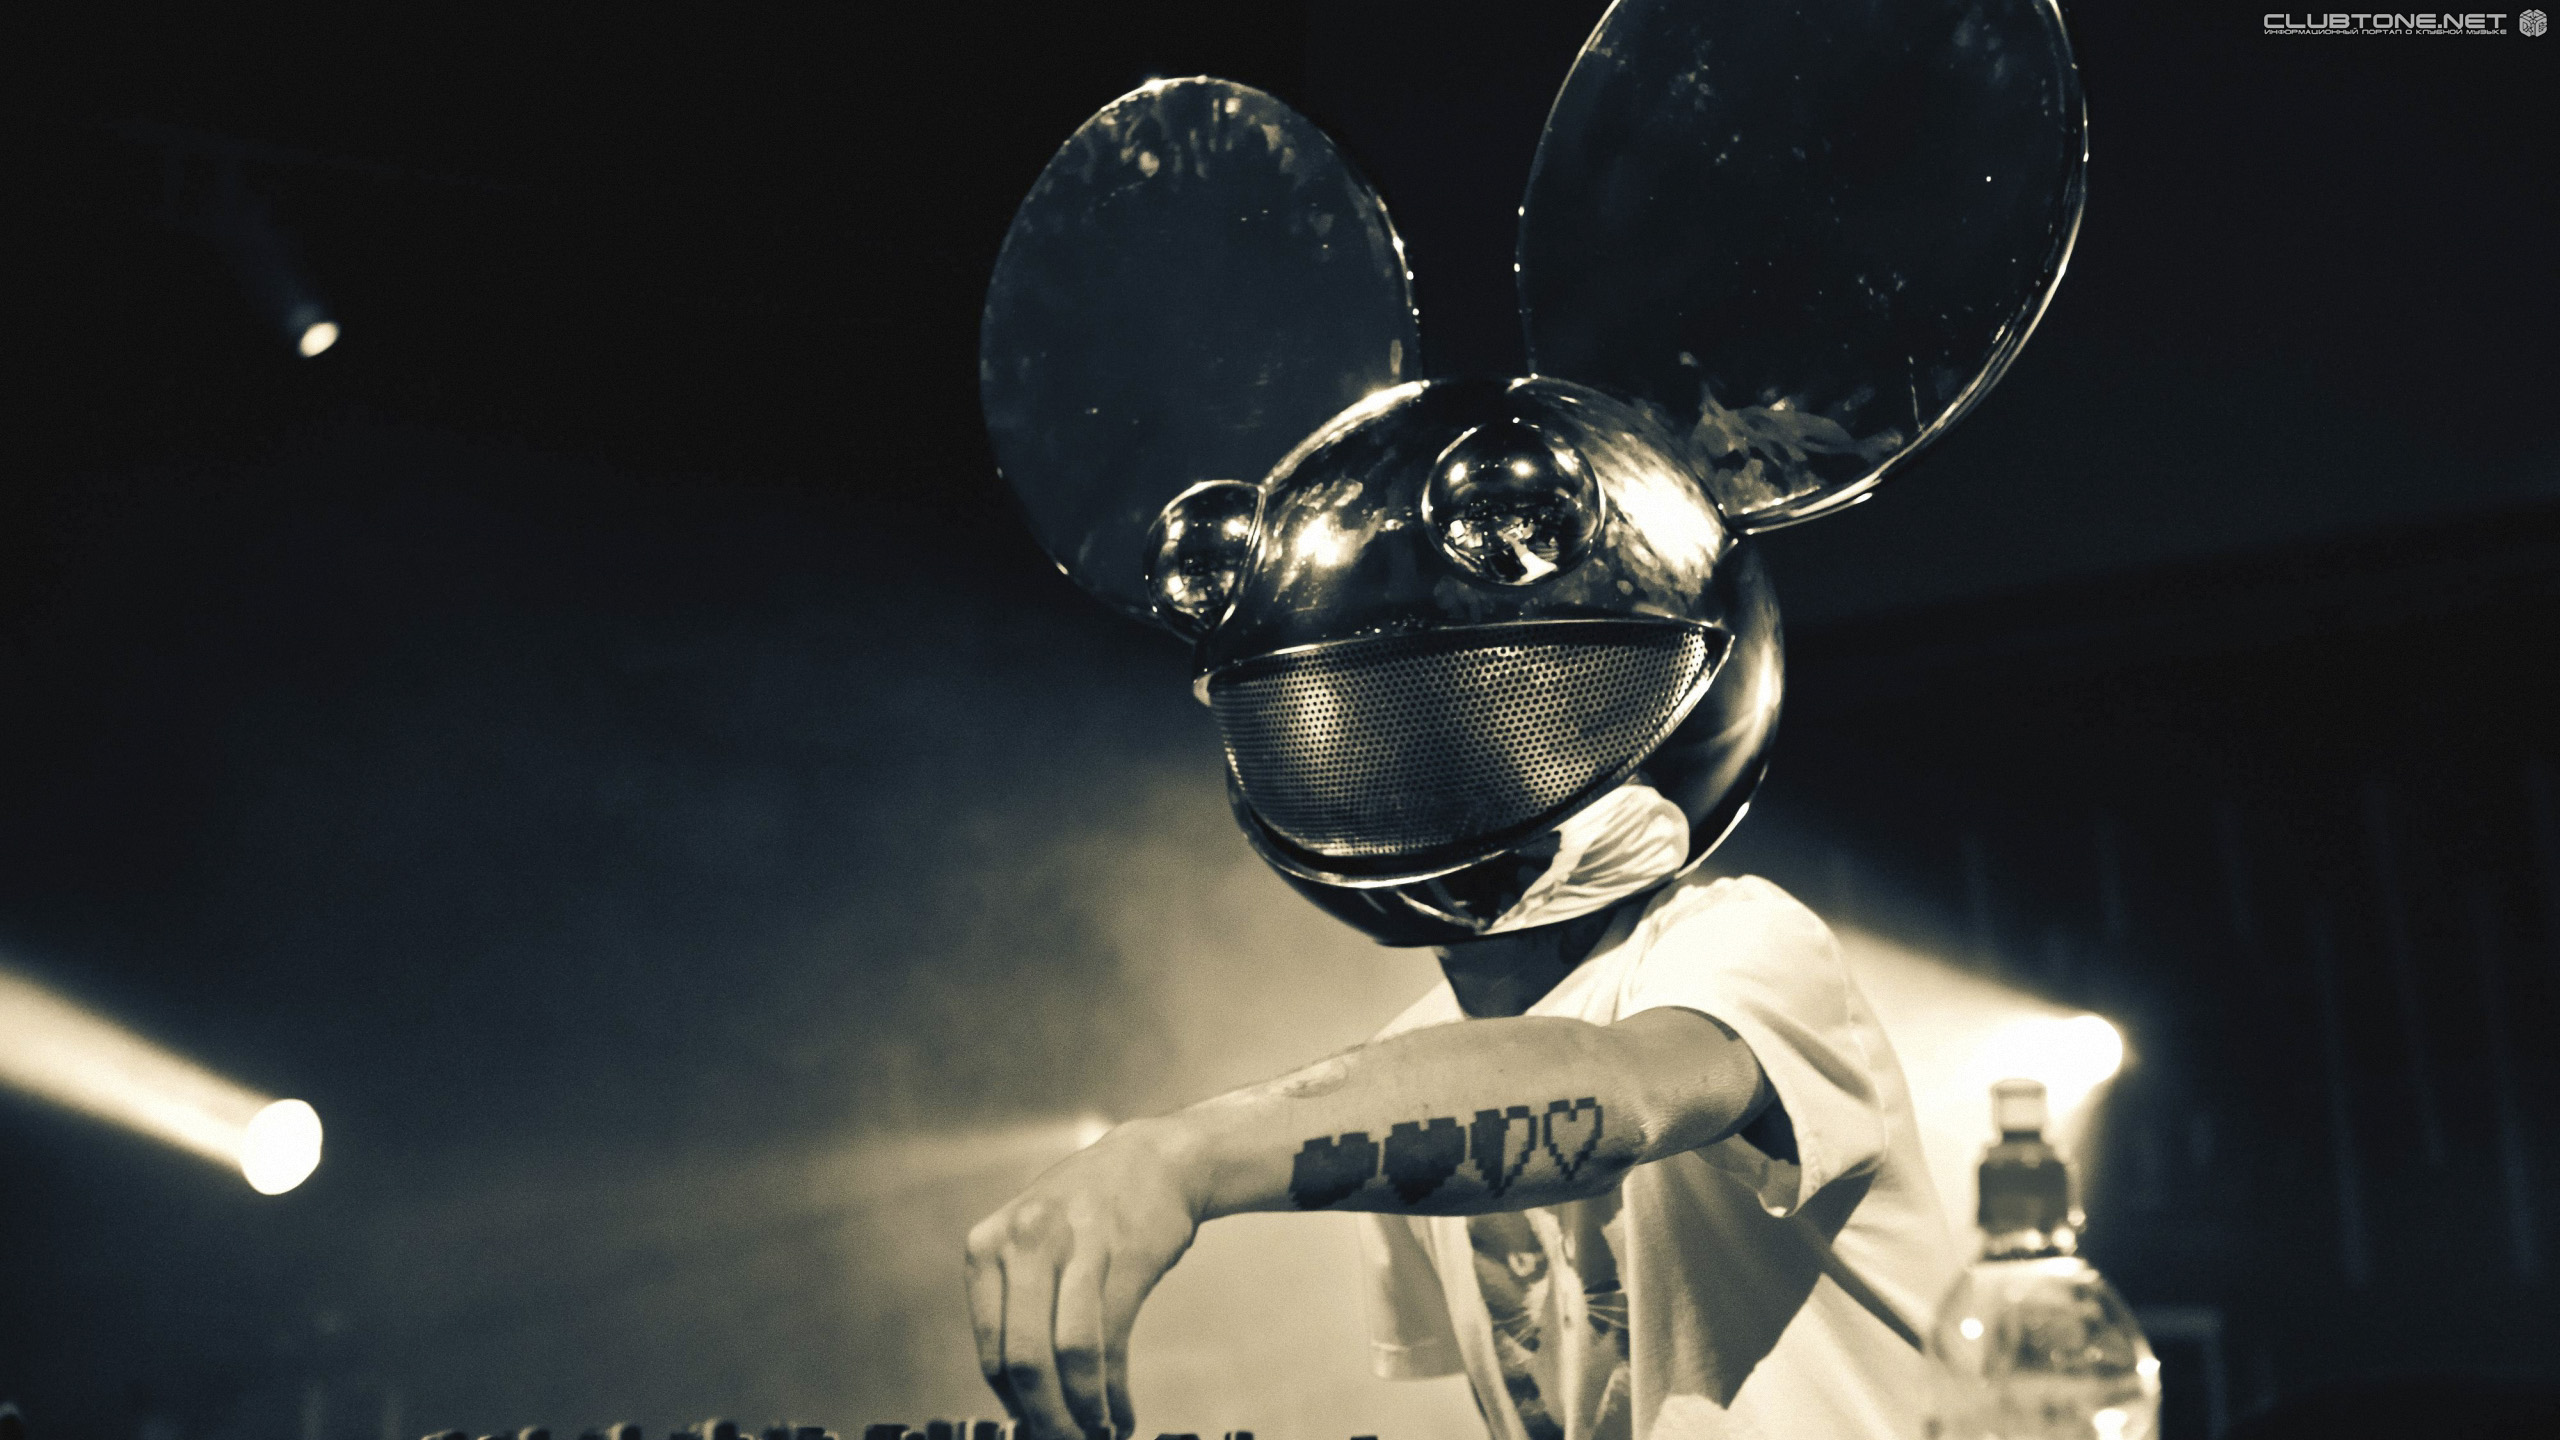 Deadmau5 playing